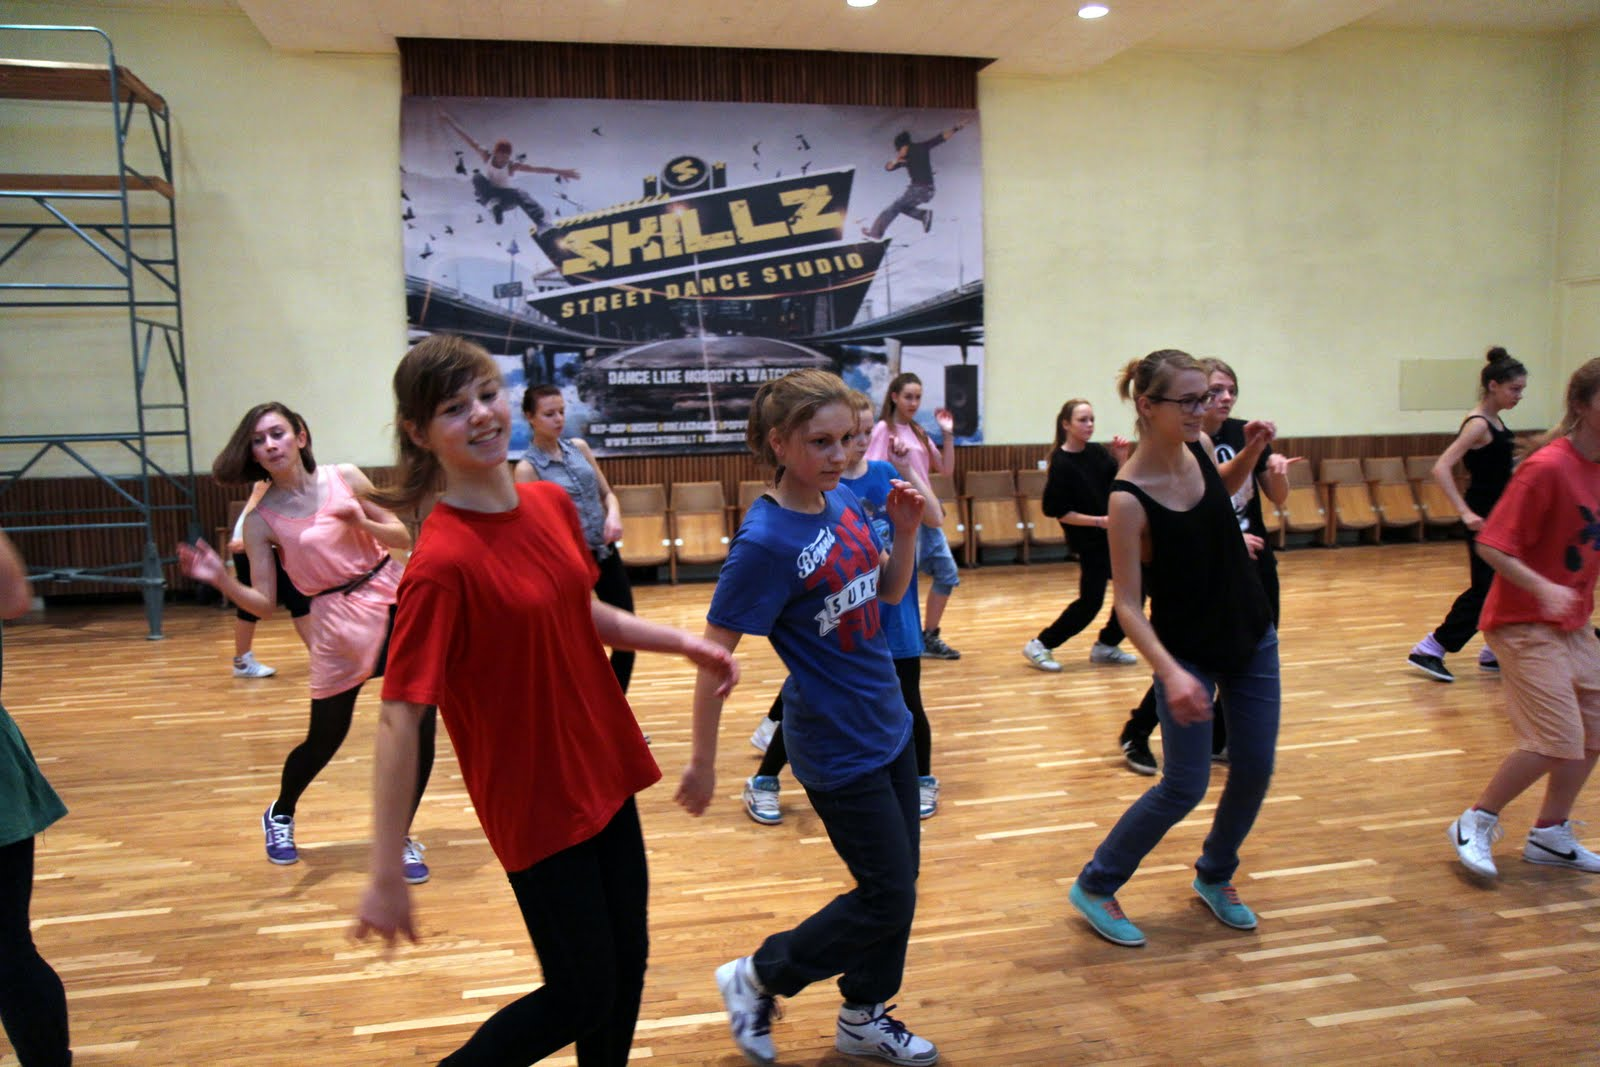 Waacking workshop with Nastya (LV) - IMG_2038.JPG